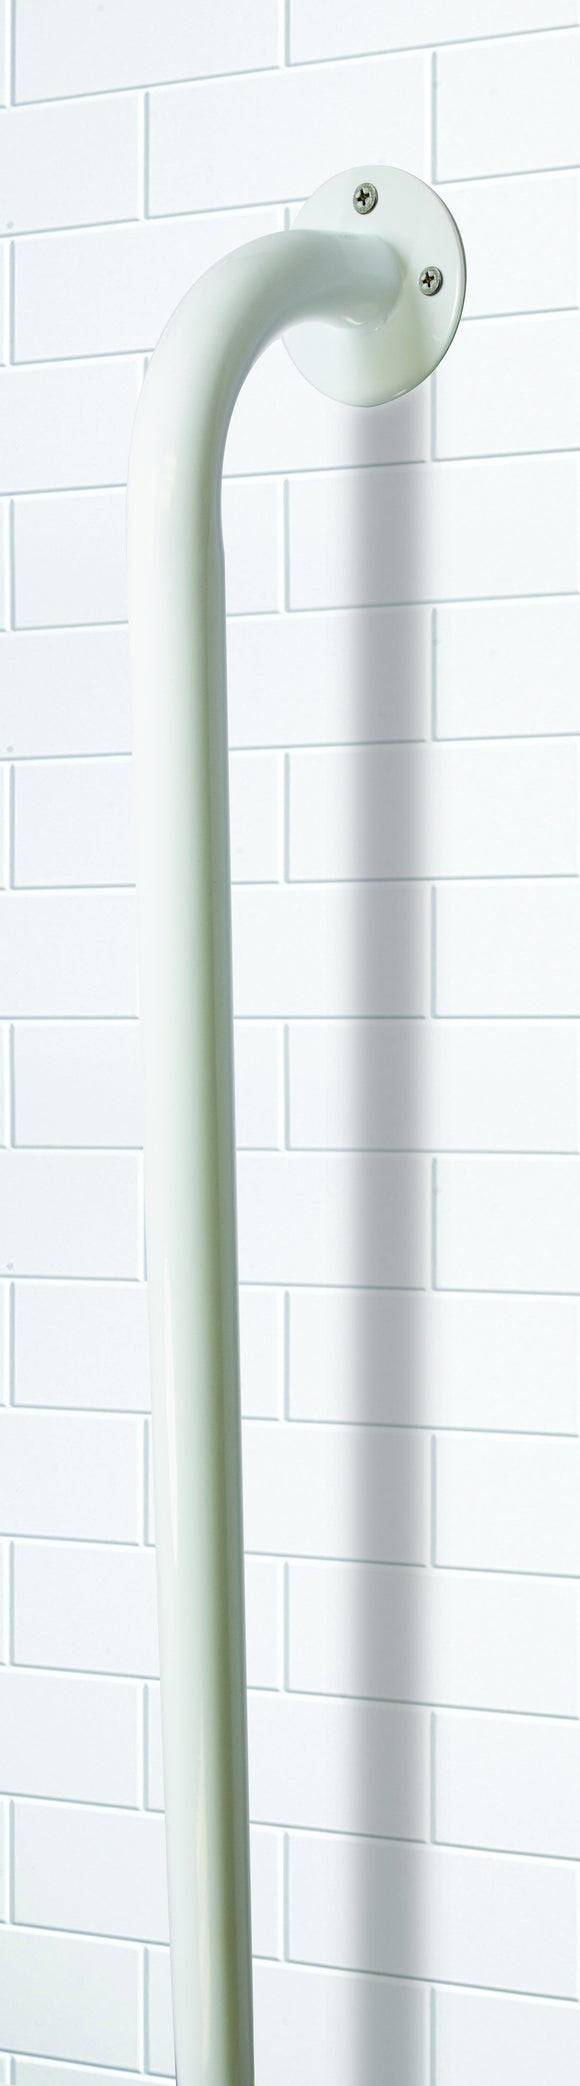 B3212 Grab Bar 12in White Enamel